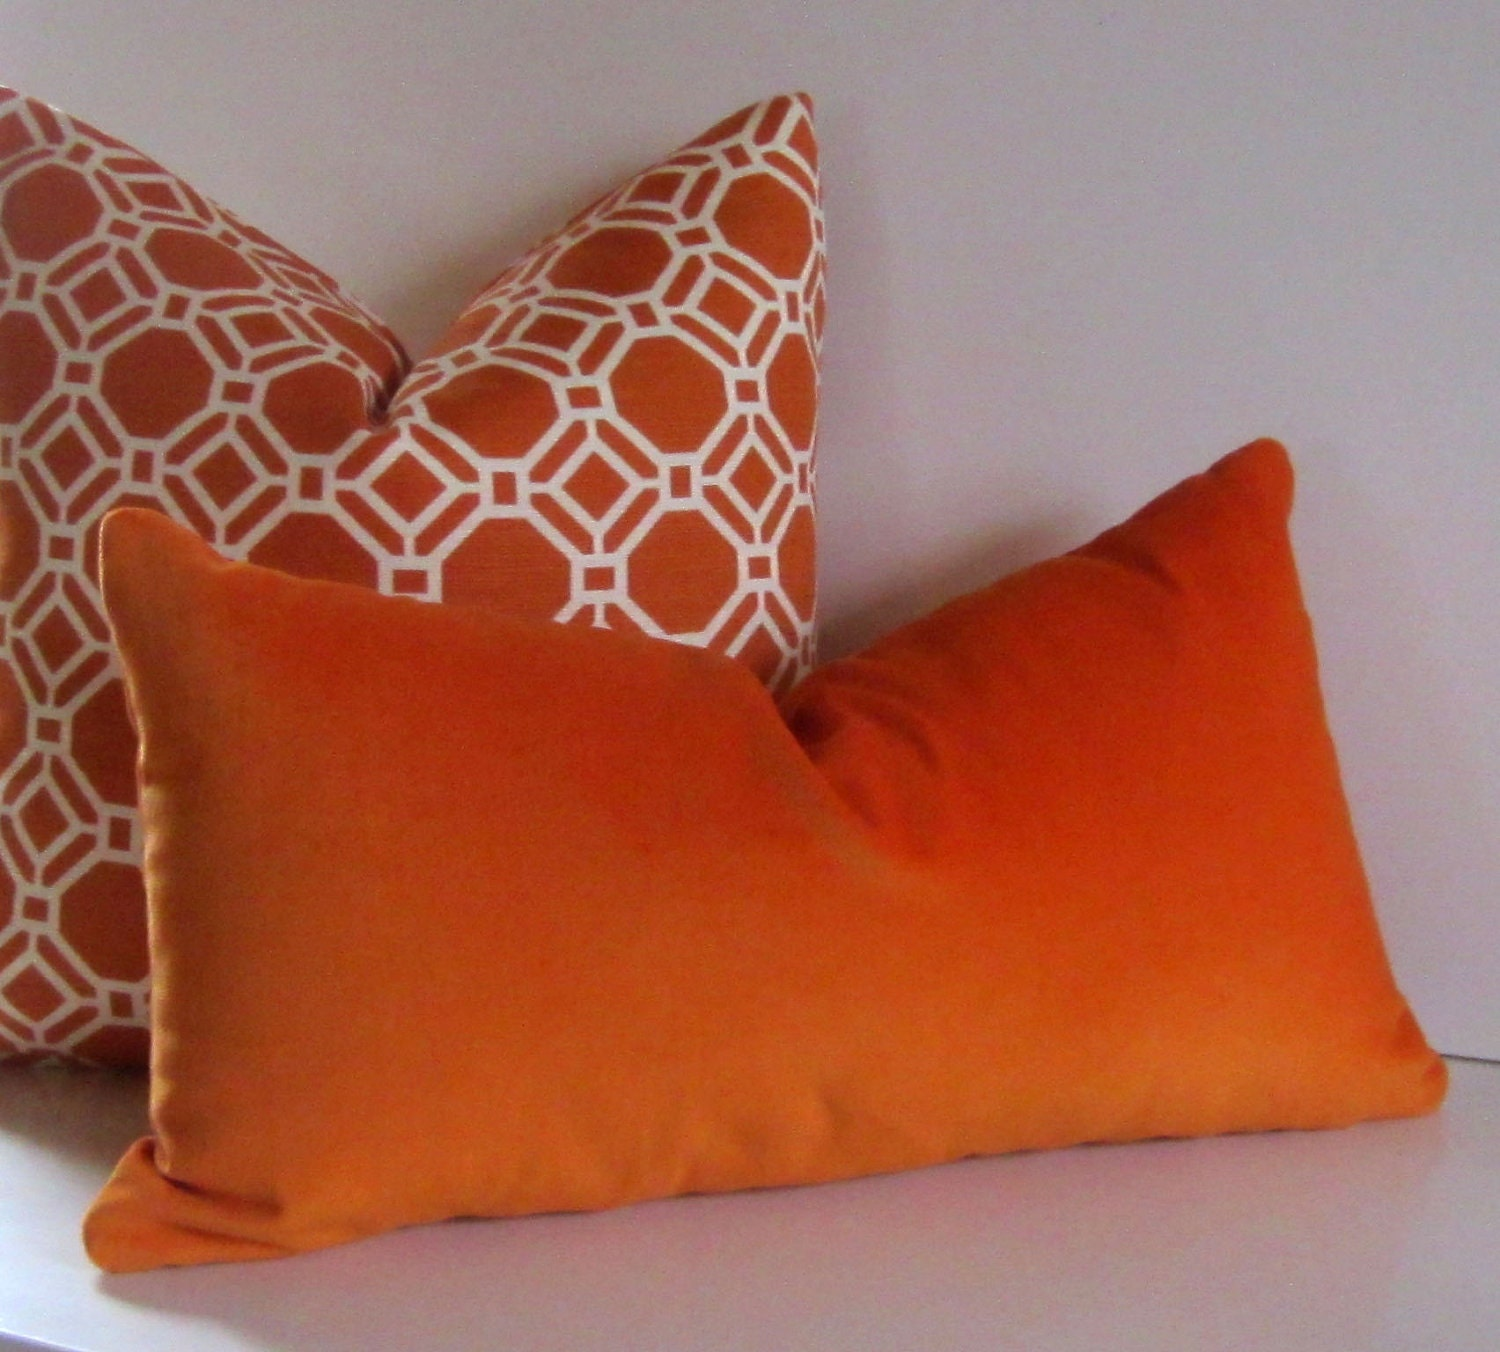 Lumbar Pillows. Lumbar Pillow 13. Orange Decorative Pillow. Support Pillows For Bed. Outdoor ...